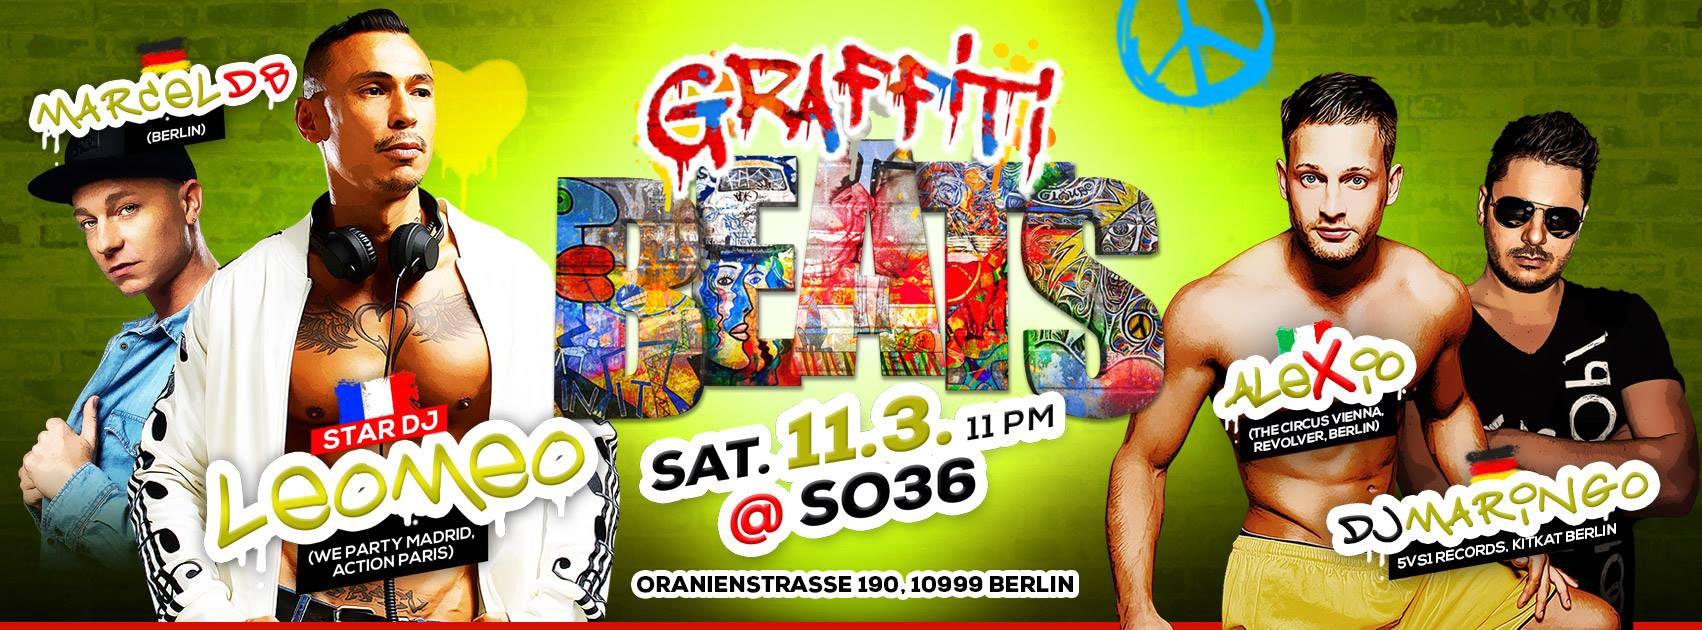 Marcel db live bei Graffiti Beats Berlin